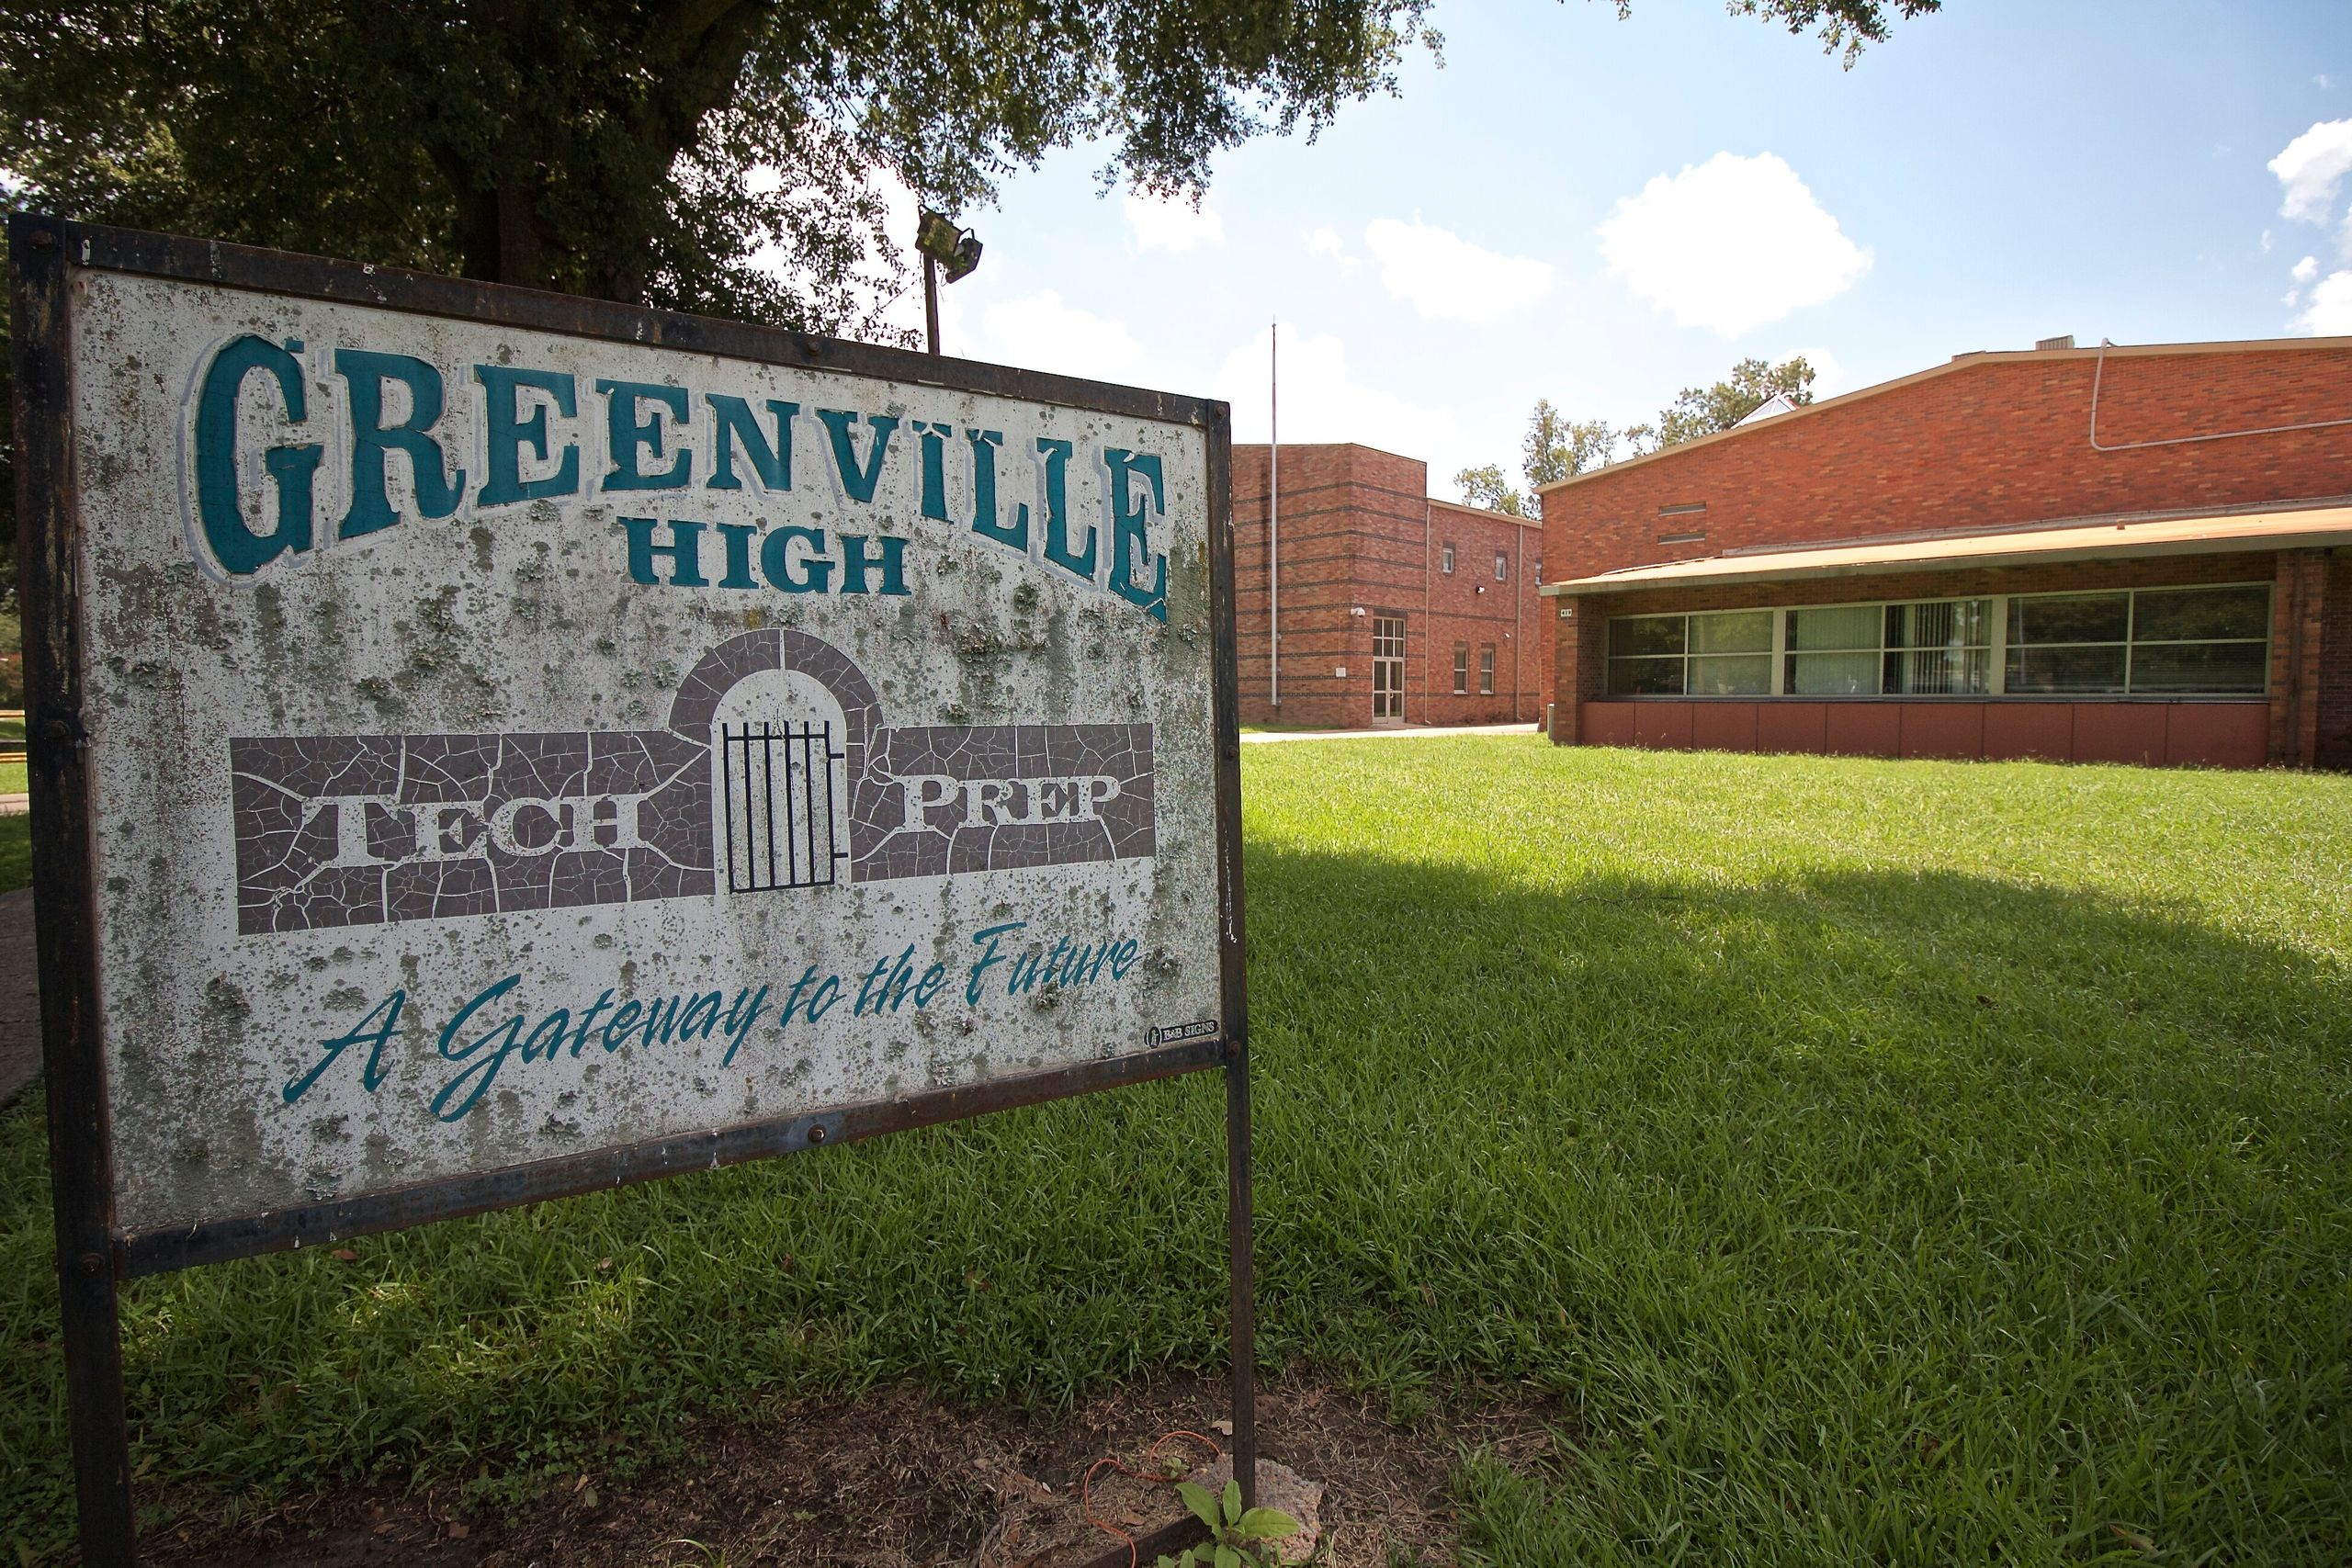 Students and faculty at Greenville High School transitioned to remote learning in mid-March. The school is unable to assign a